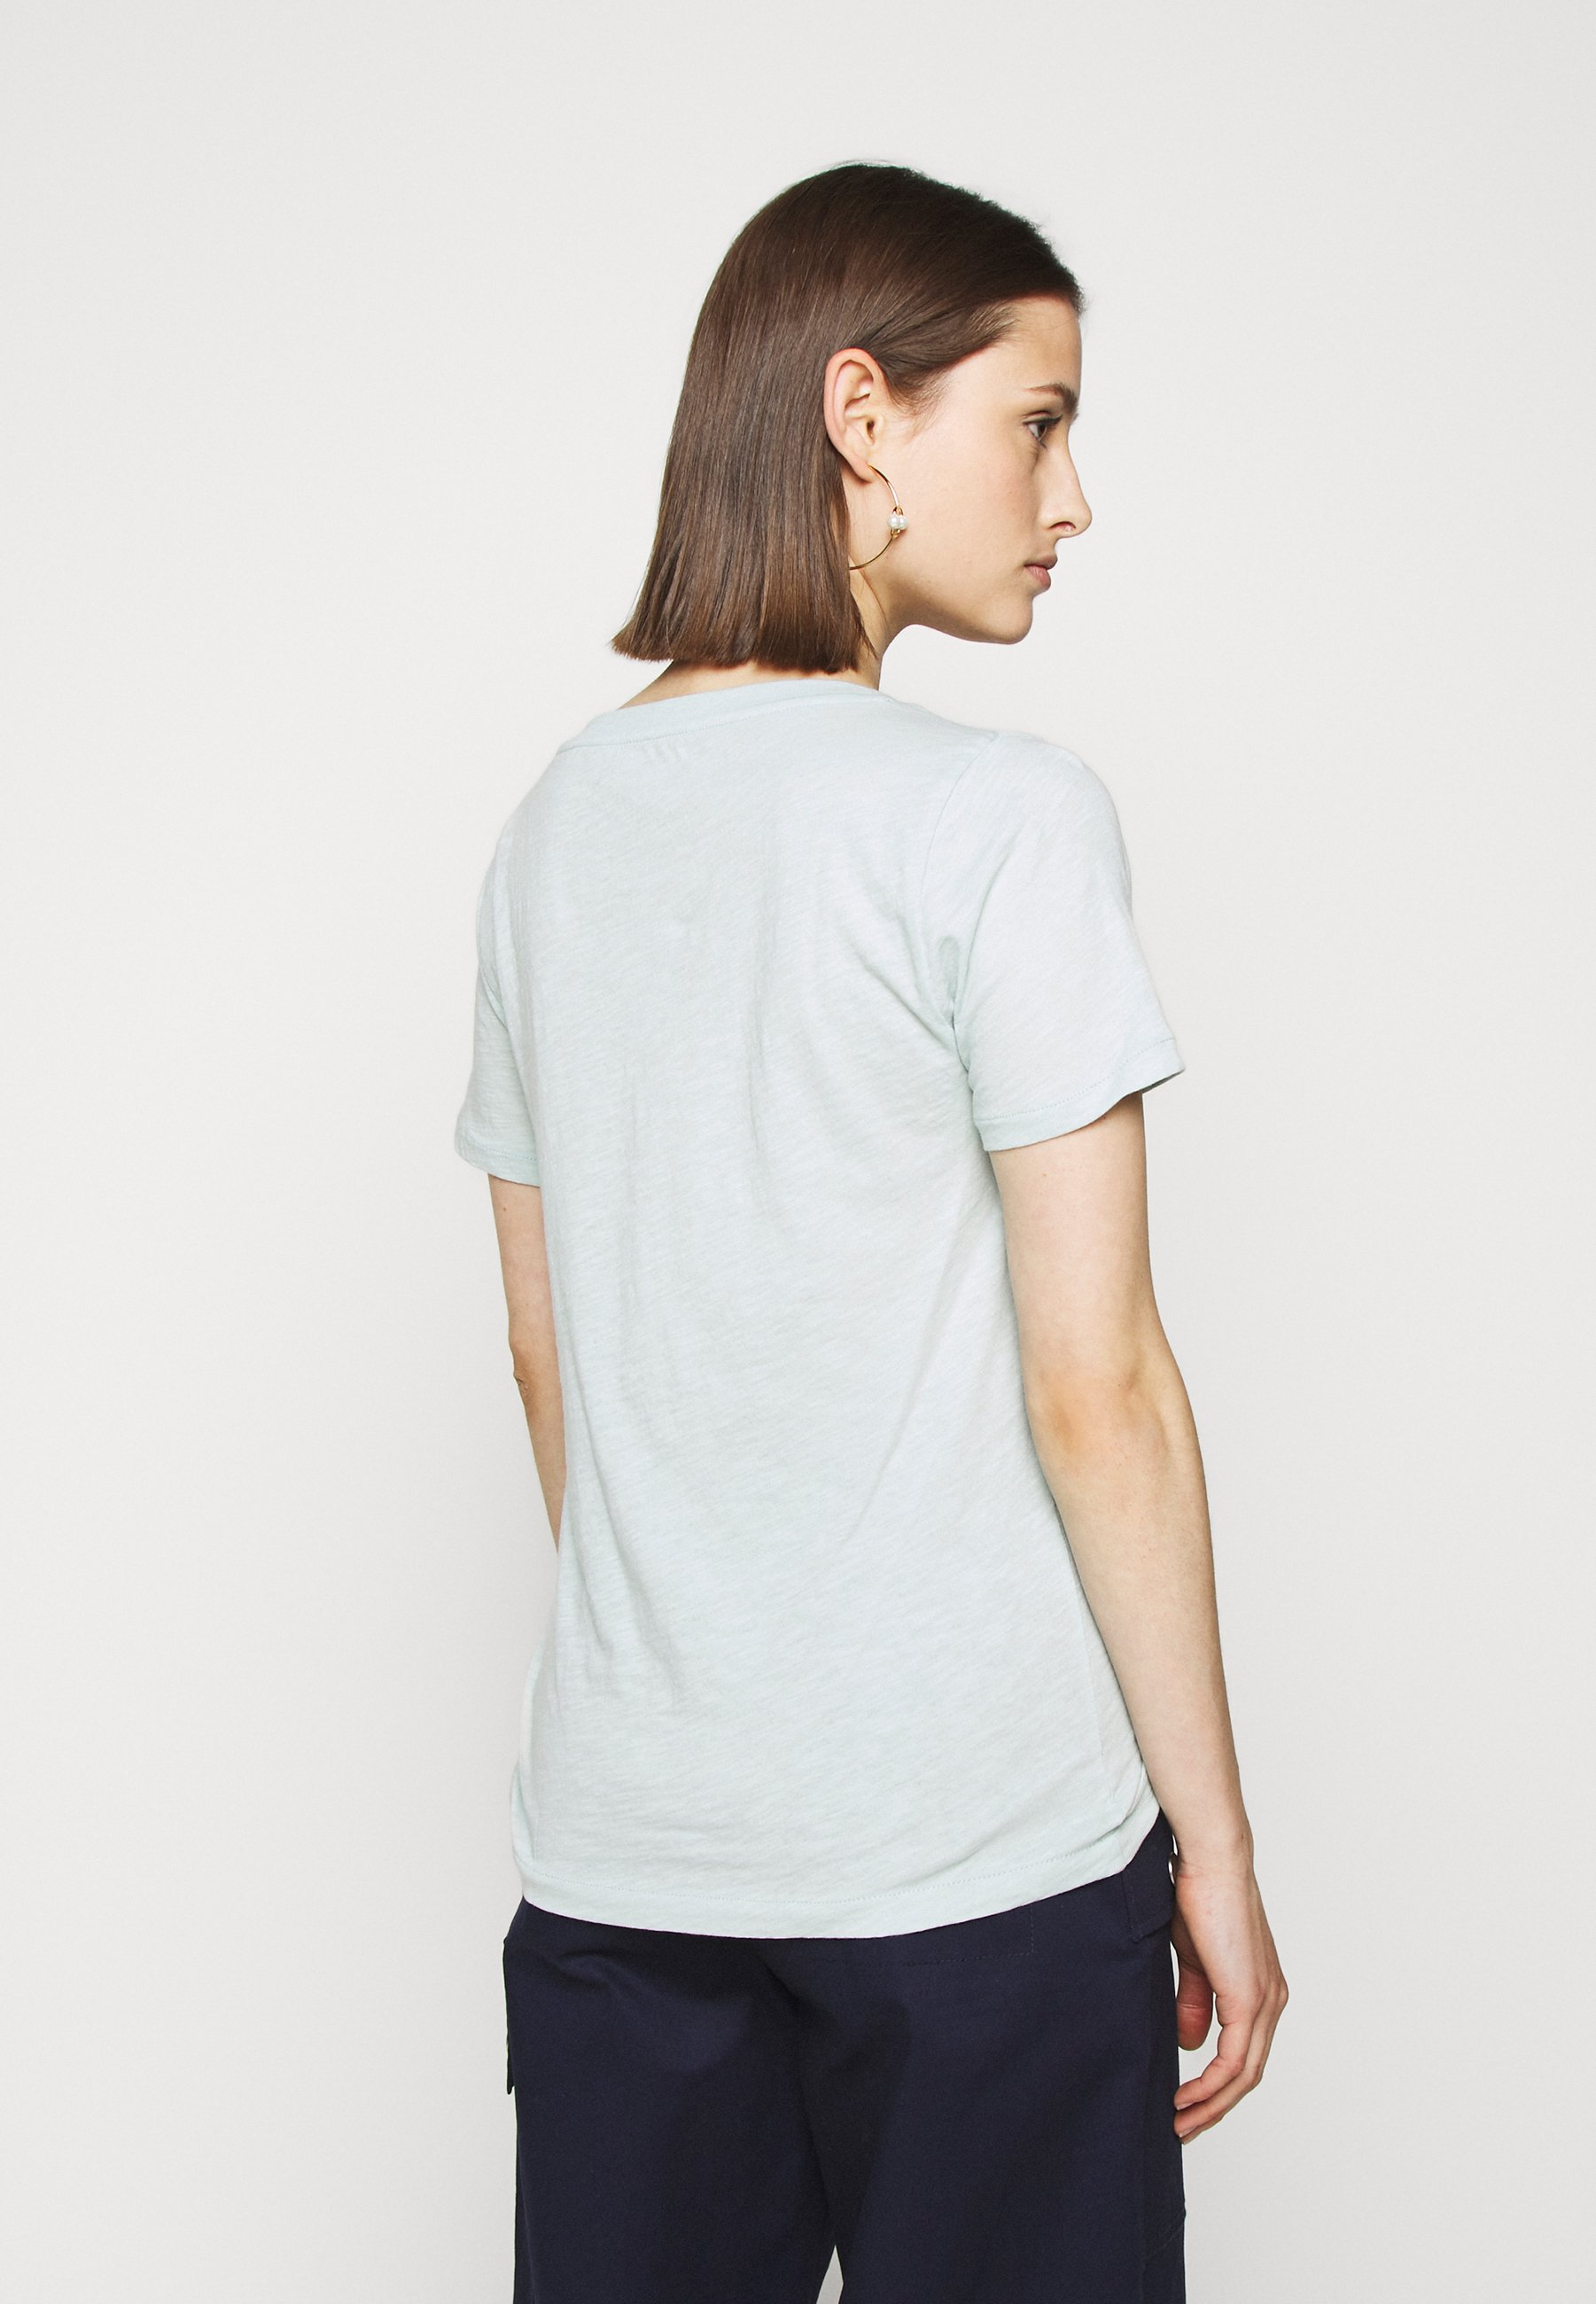 J.crew Vintage V Neck Tee - T-shirts Faded Mint/blågrå